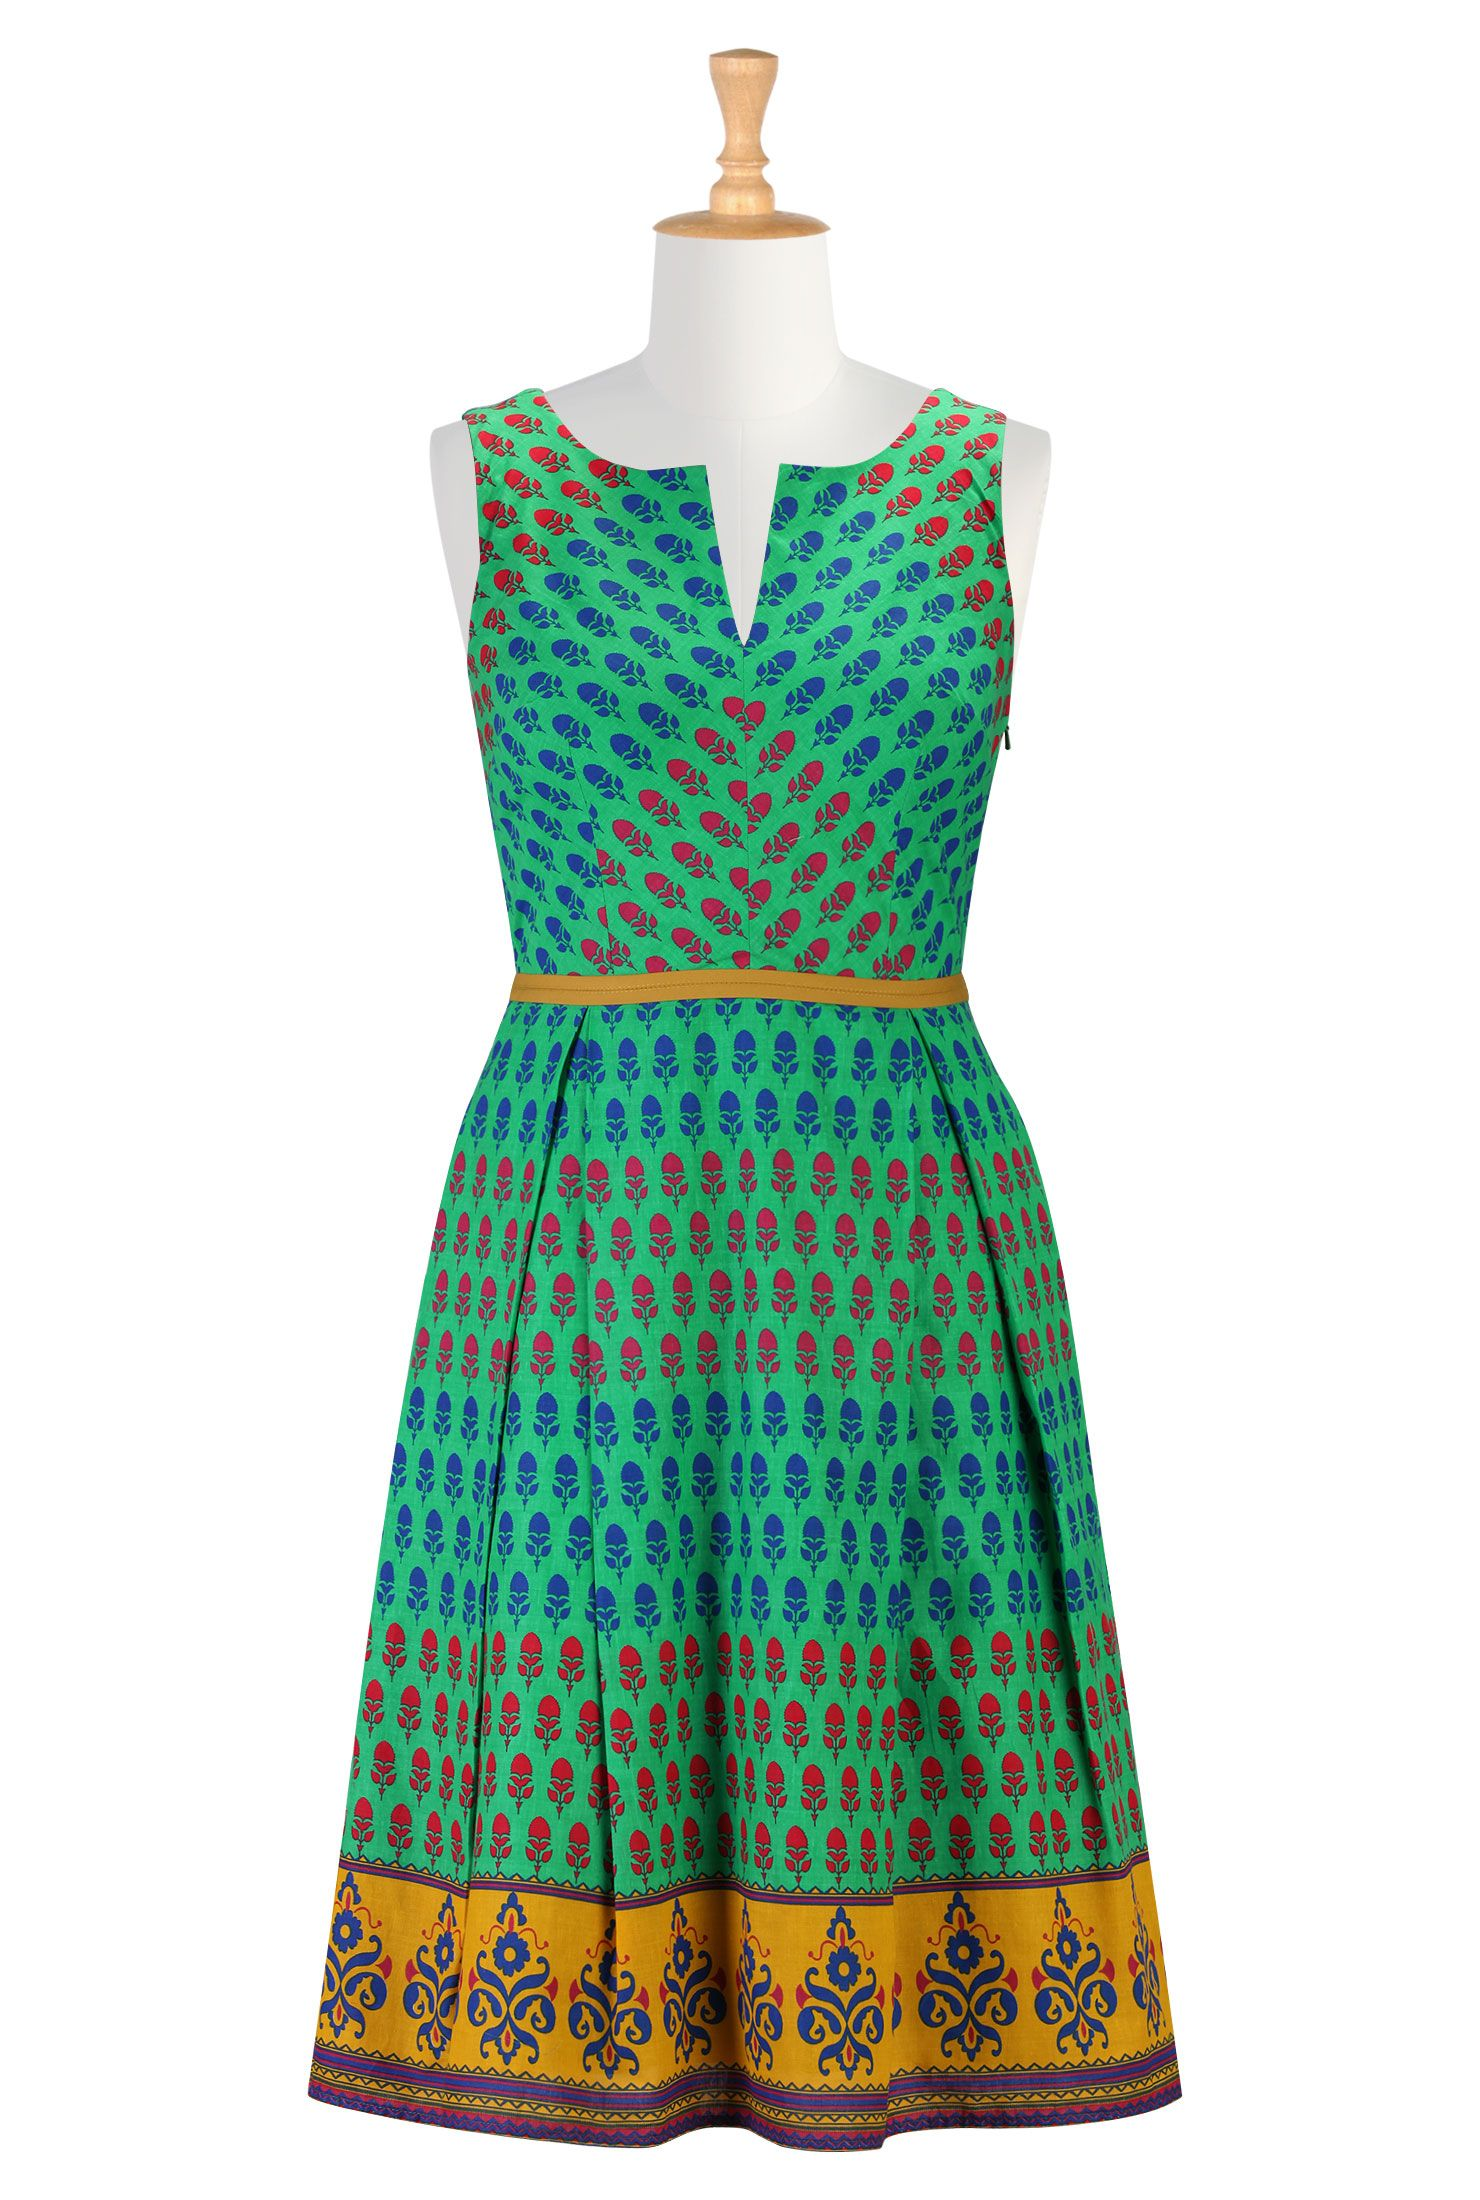 cotton dresses for women - Google Search   sewing top   Pinterest